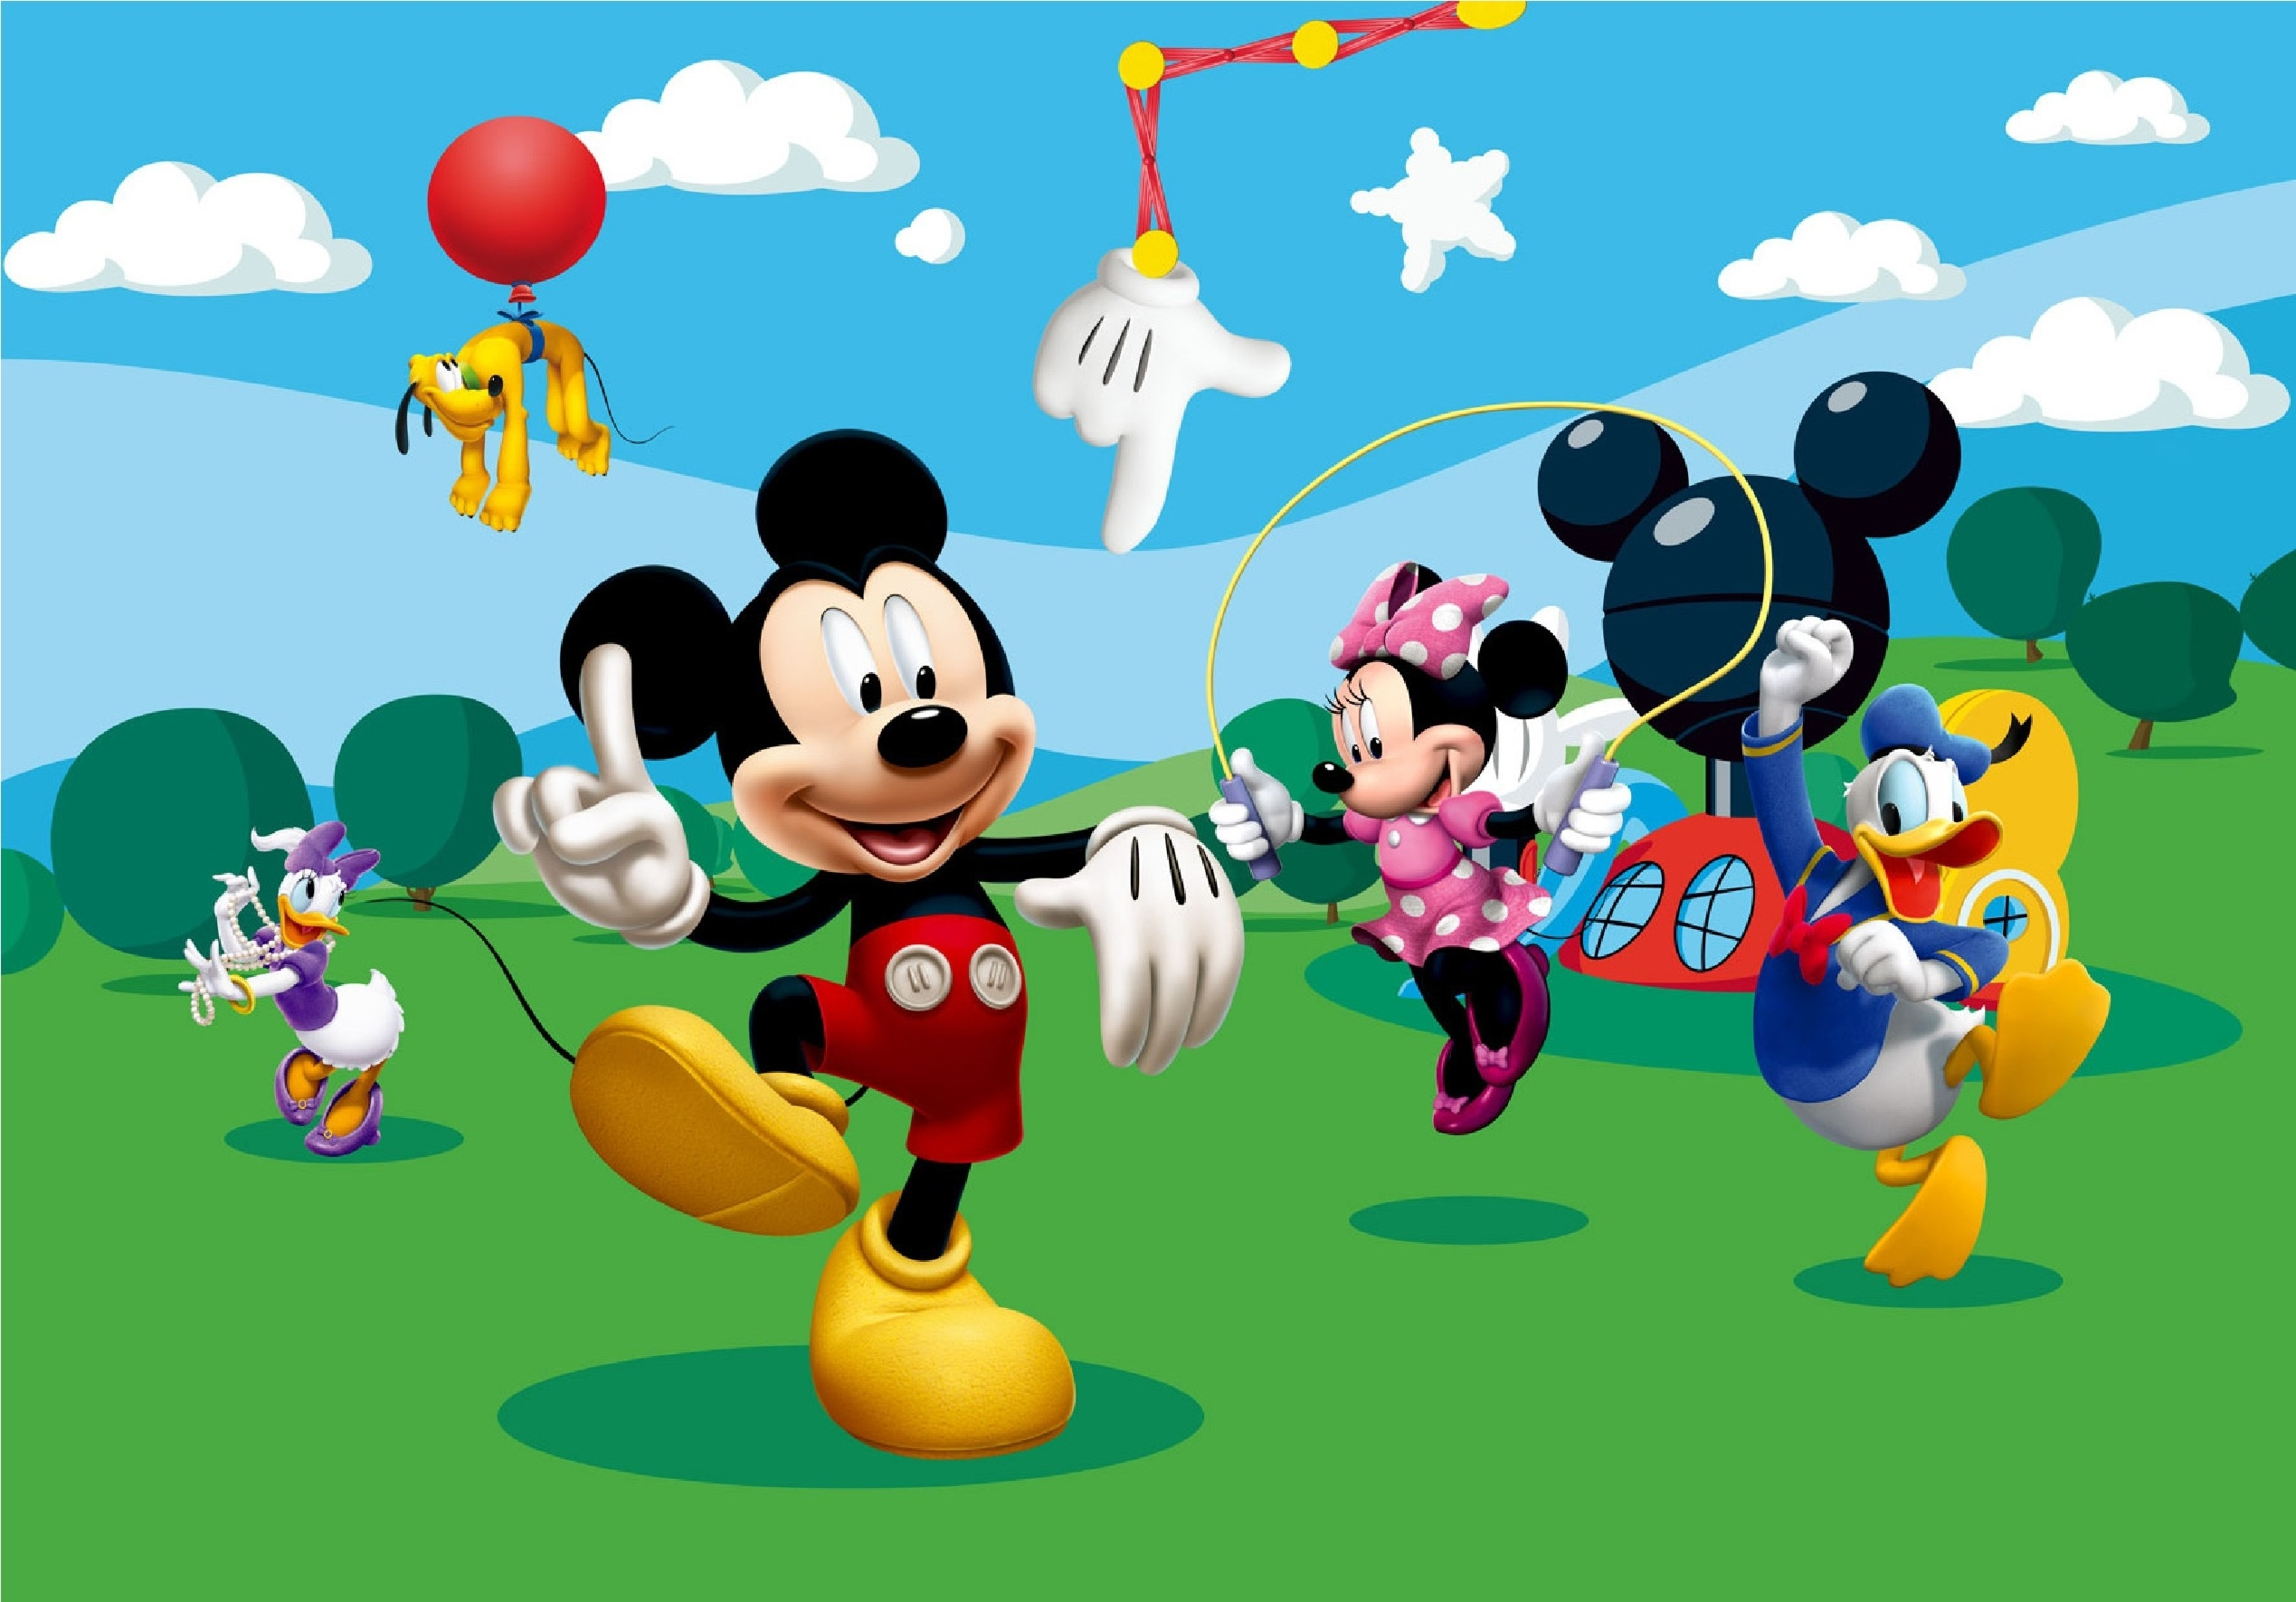 Title : mickey mouse wallpapers hd | stuff to buy | pinterest | mickey mouse. Dimension : 2538 x 1771. File Type : JPG/JPEG